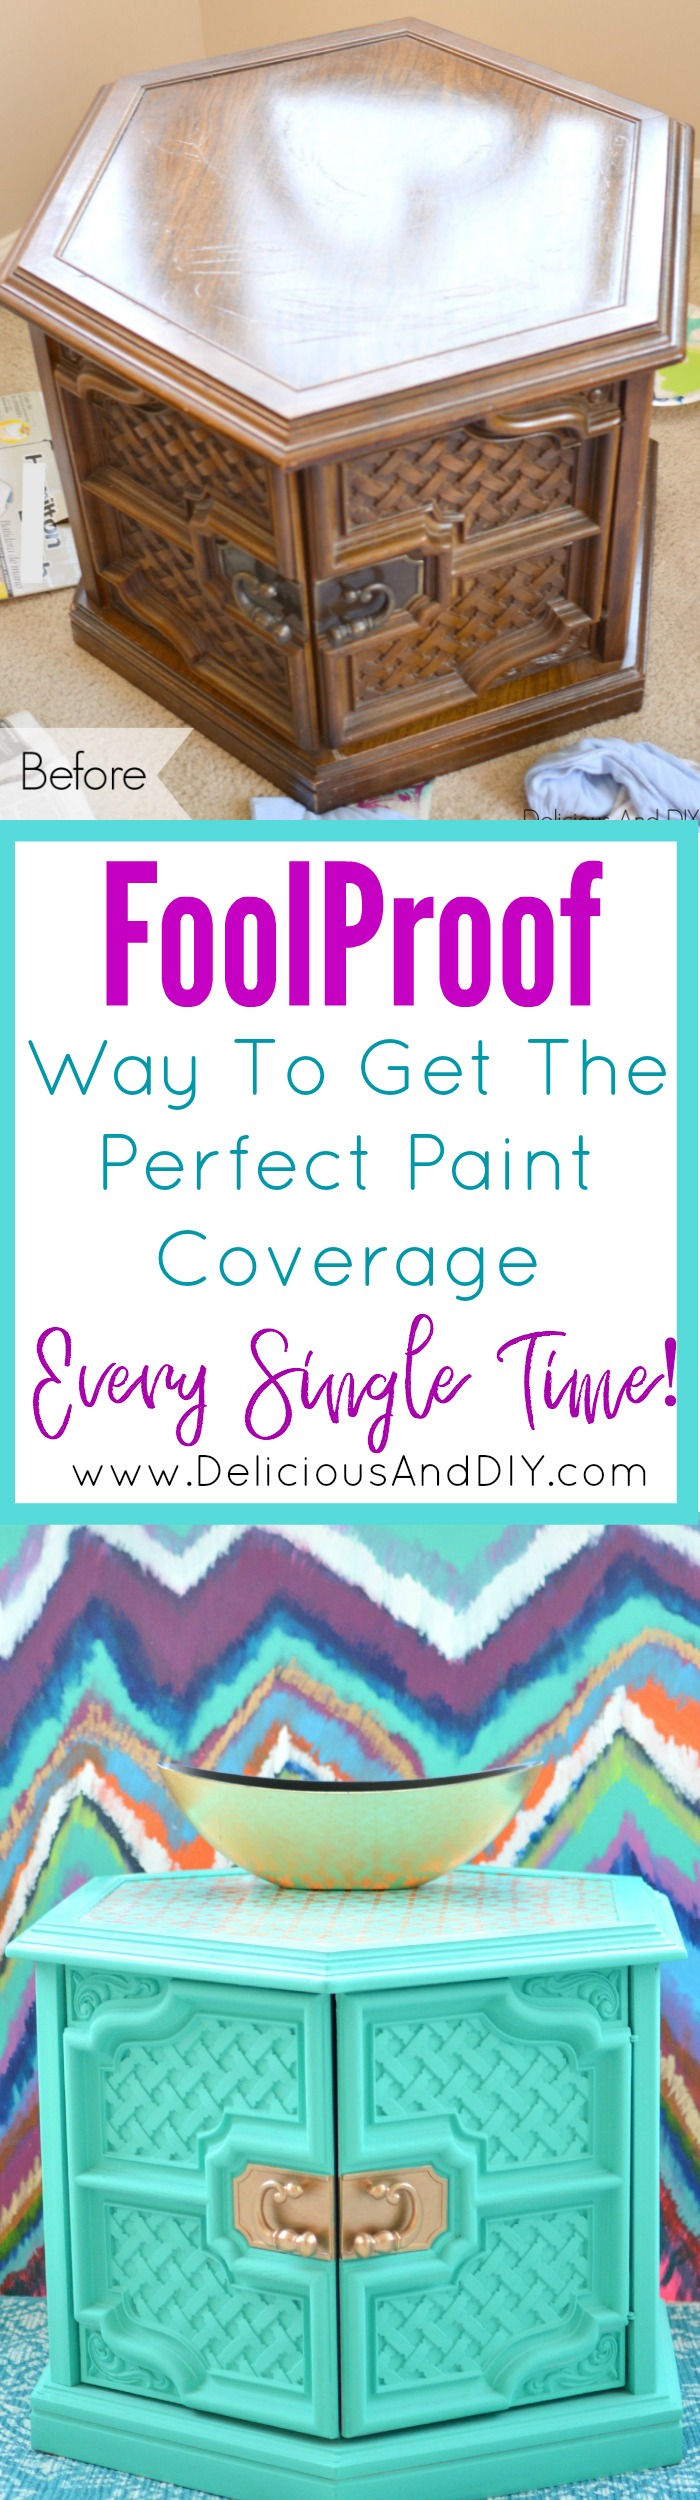 Foolprrof Way to Get the Perfect Paint Coverage Every Single Time| Painting How To| End Table Makeover| Easy Way To Paint| Before and After | Home Decor| Painted Furniture| Coffee Table Ideas| Spray Painted Furniture